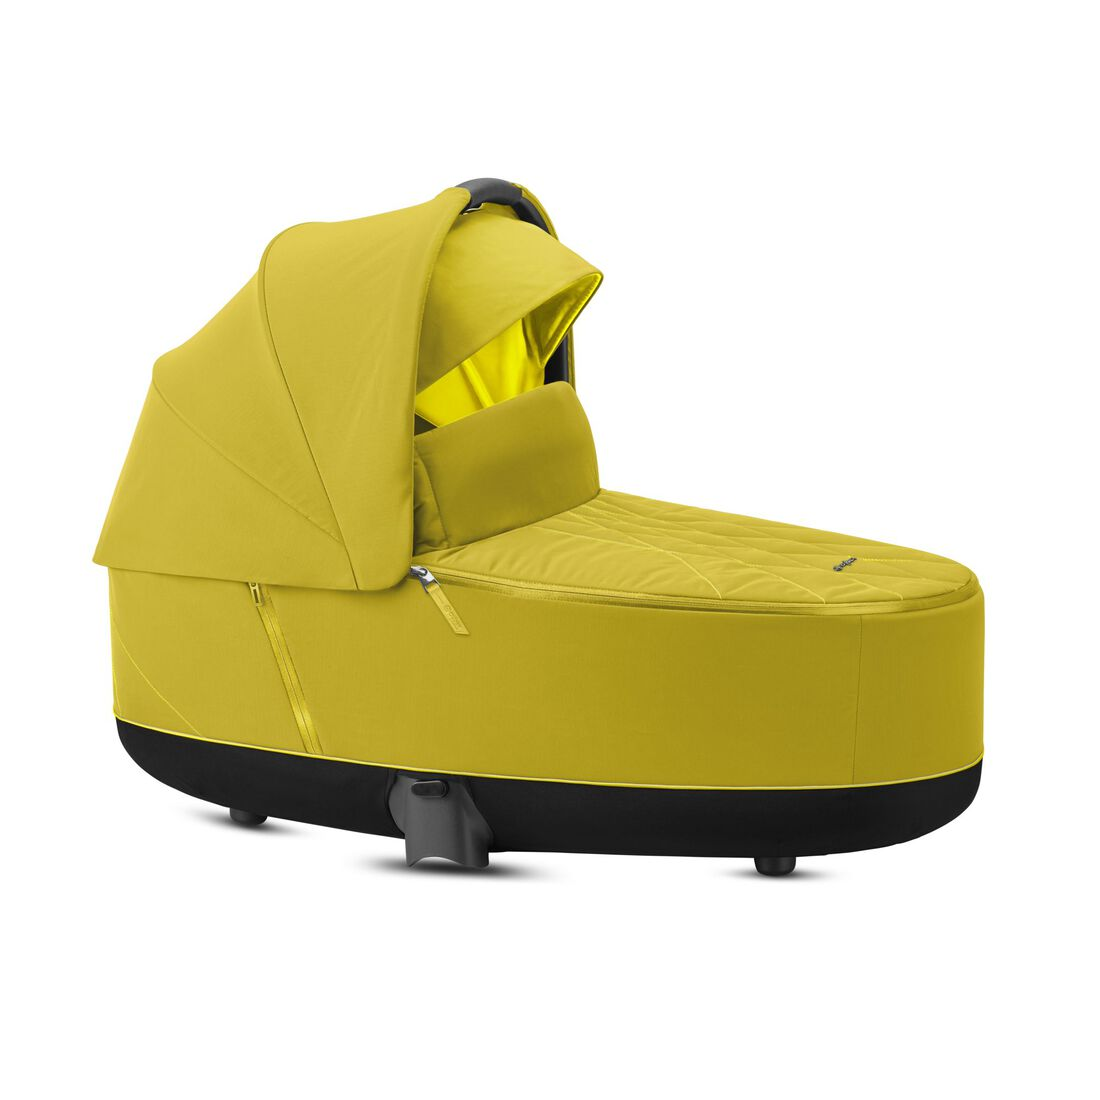 CYBEX Priam Lux Carry Cot - Mustard Yellow in Mustard Yellow large Bild 2